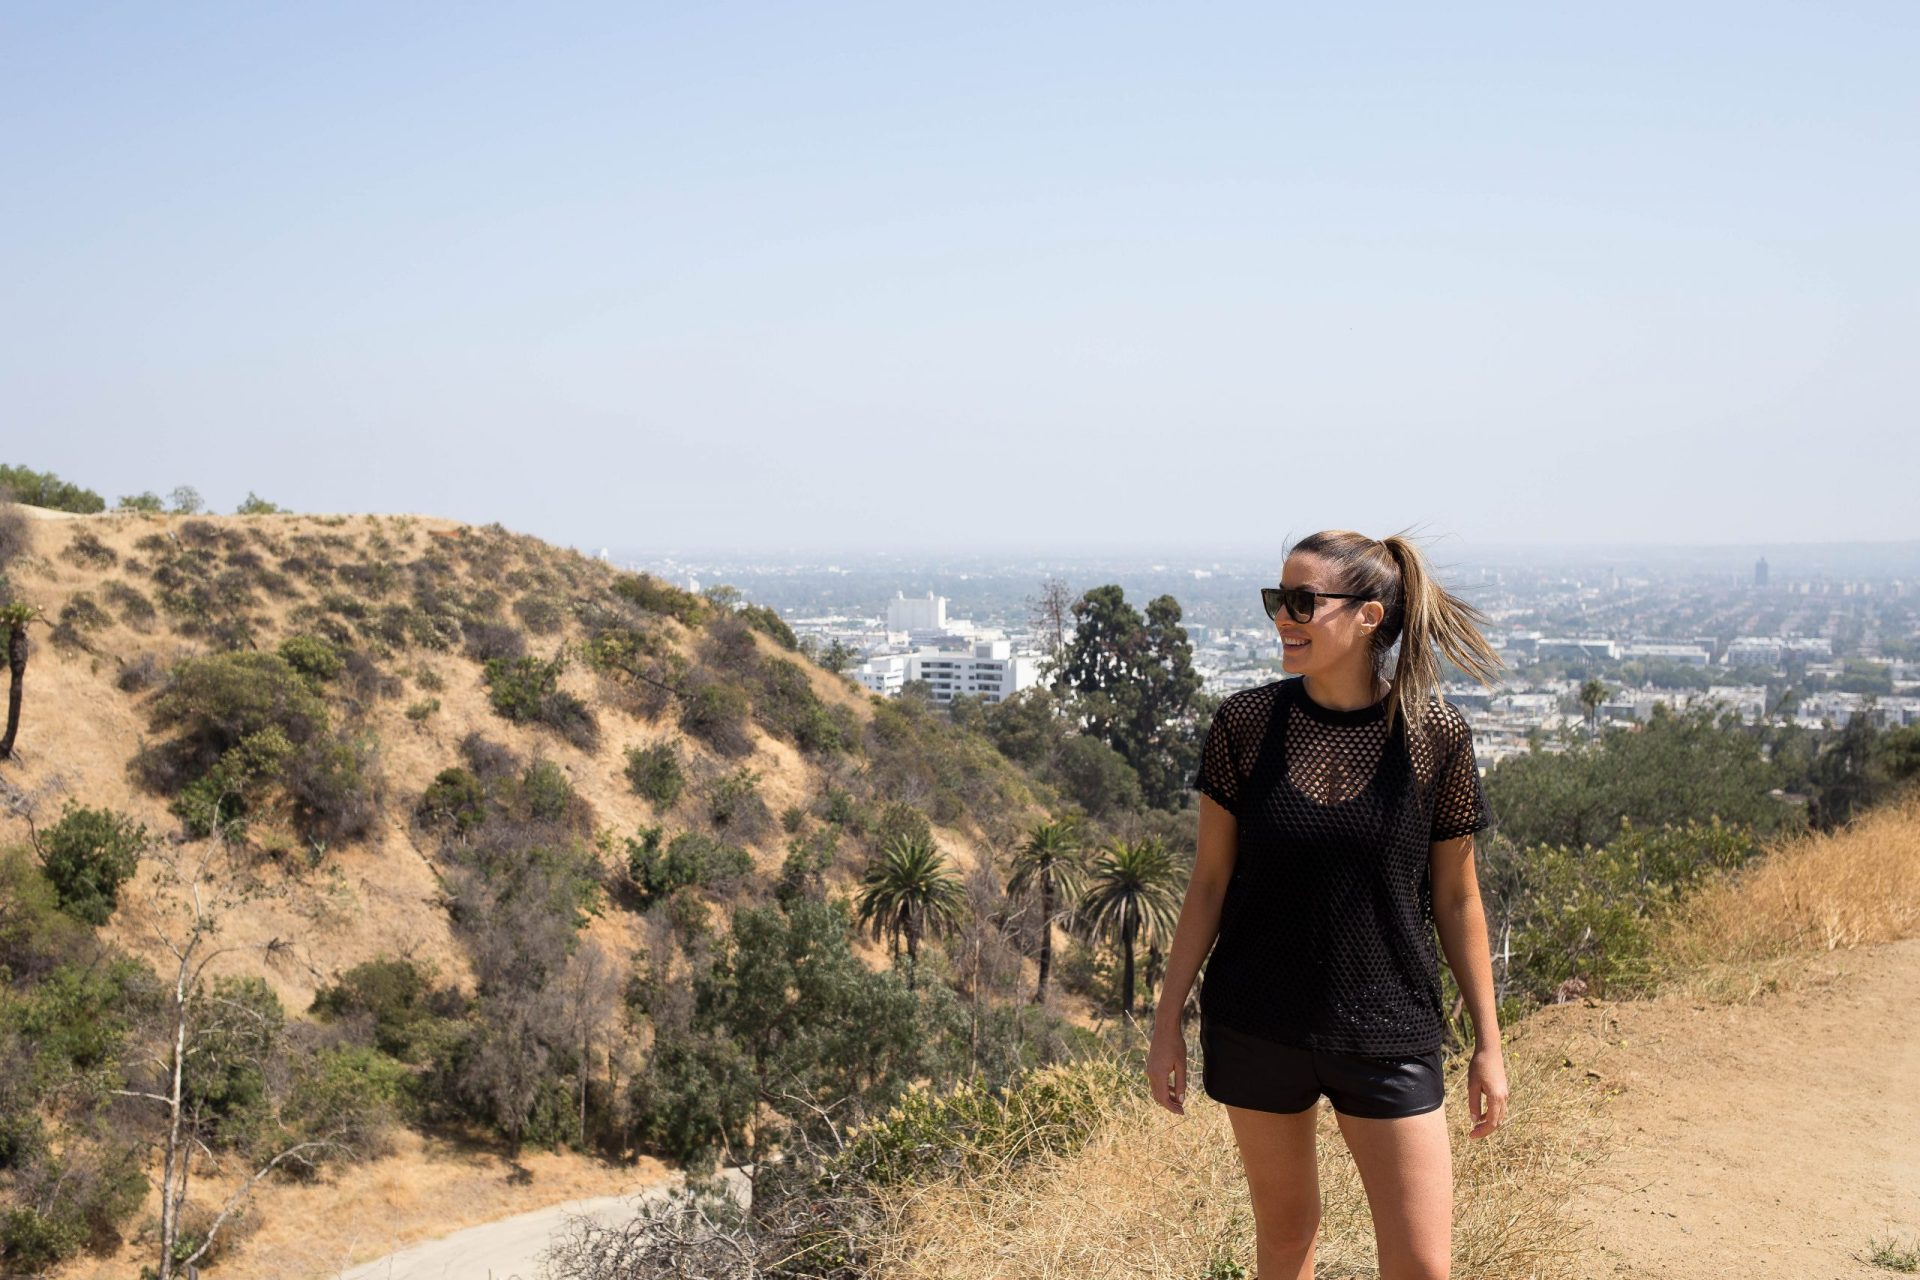 Runyon Canyon tourist attraction